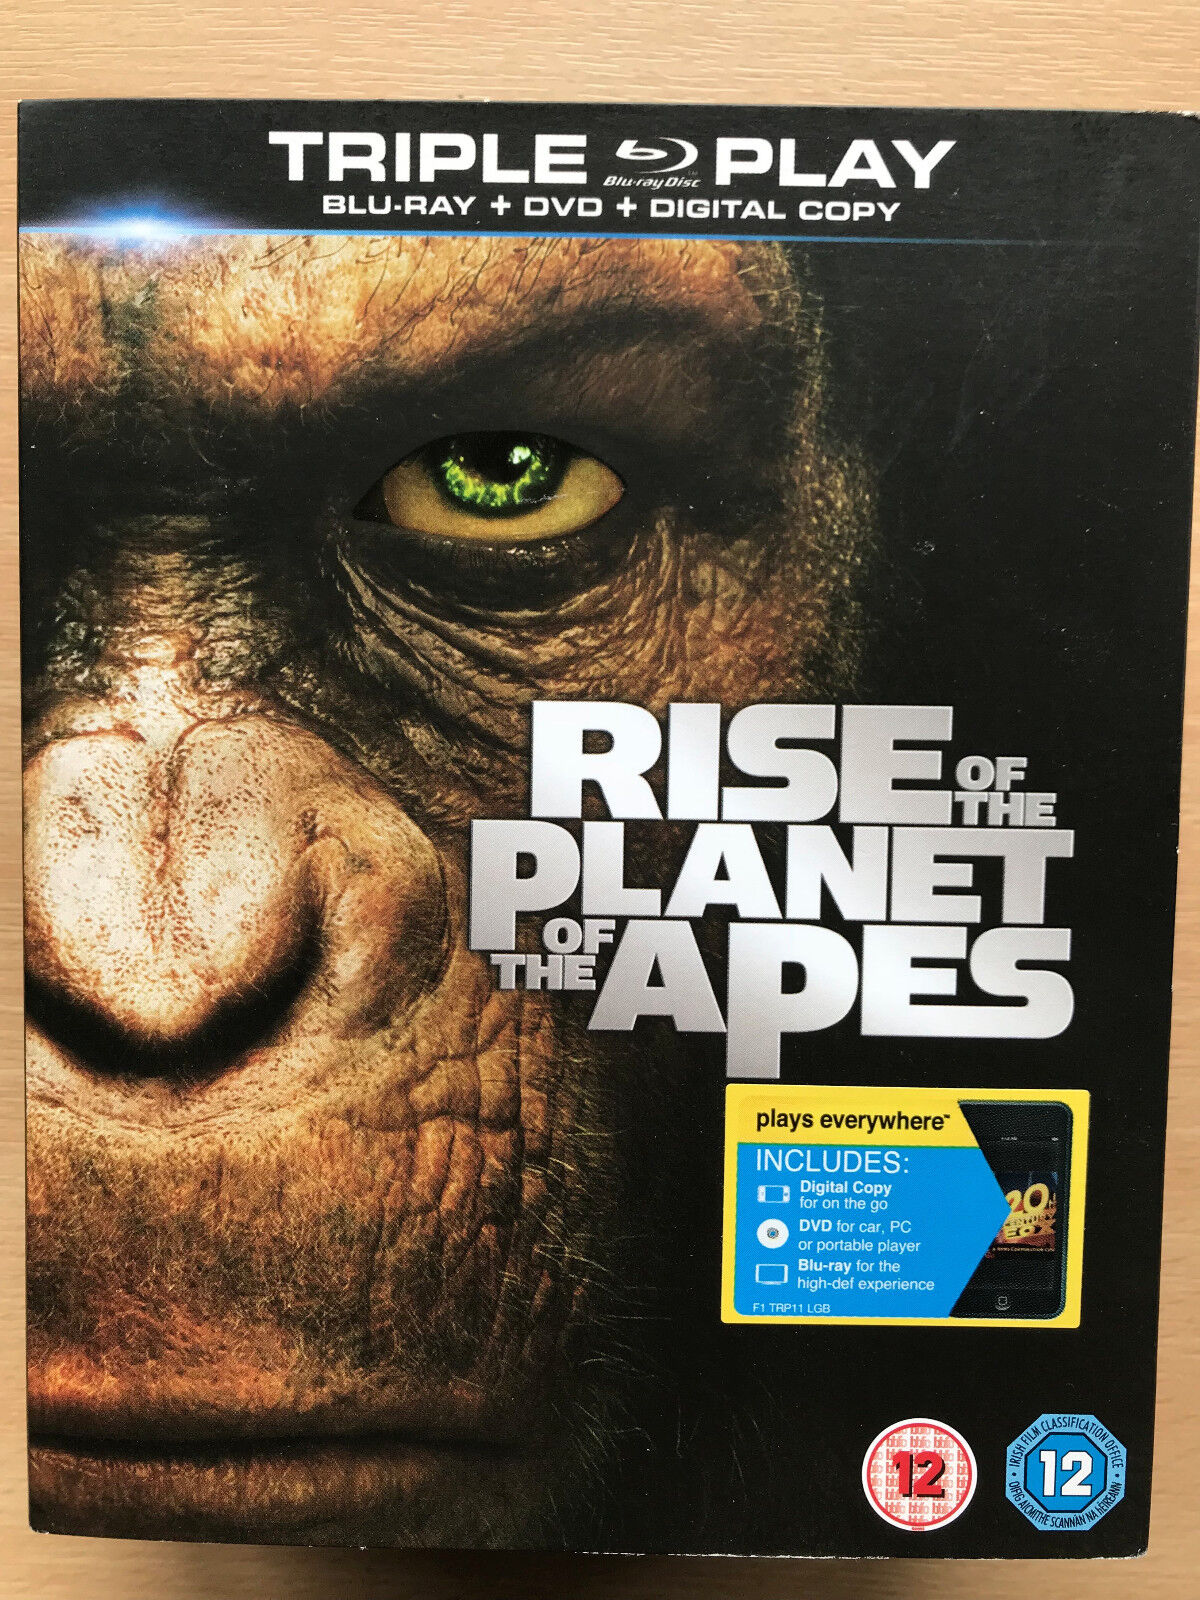 Rise Of The Planet Of The Apes 2011 Sci Fi Film Movie Uk Blu Ray With Slipcover For Sale Online